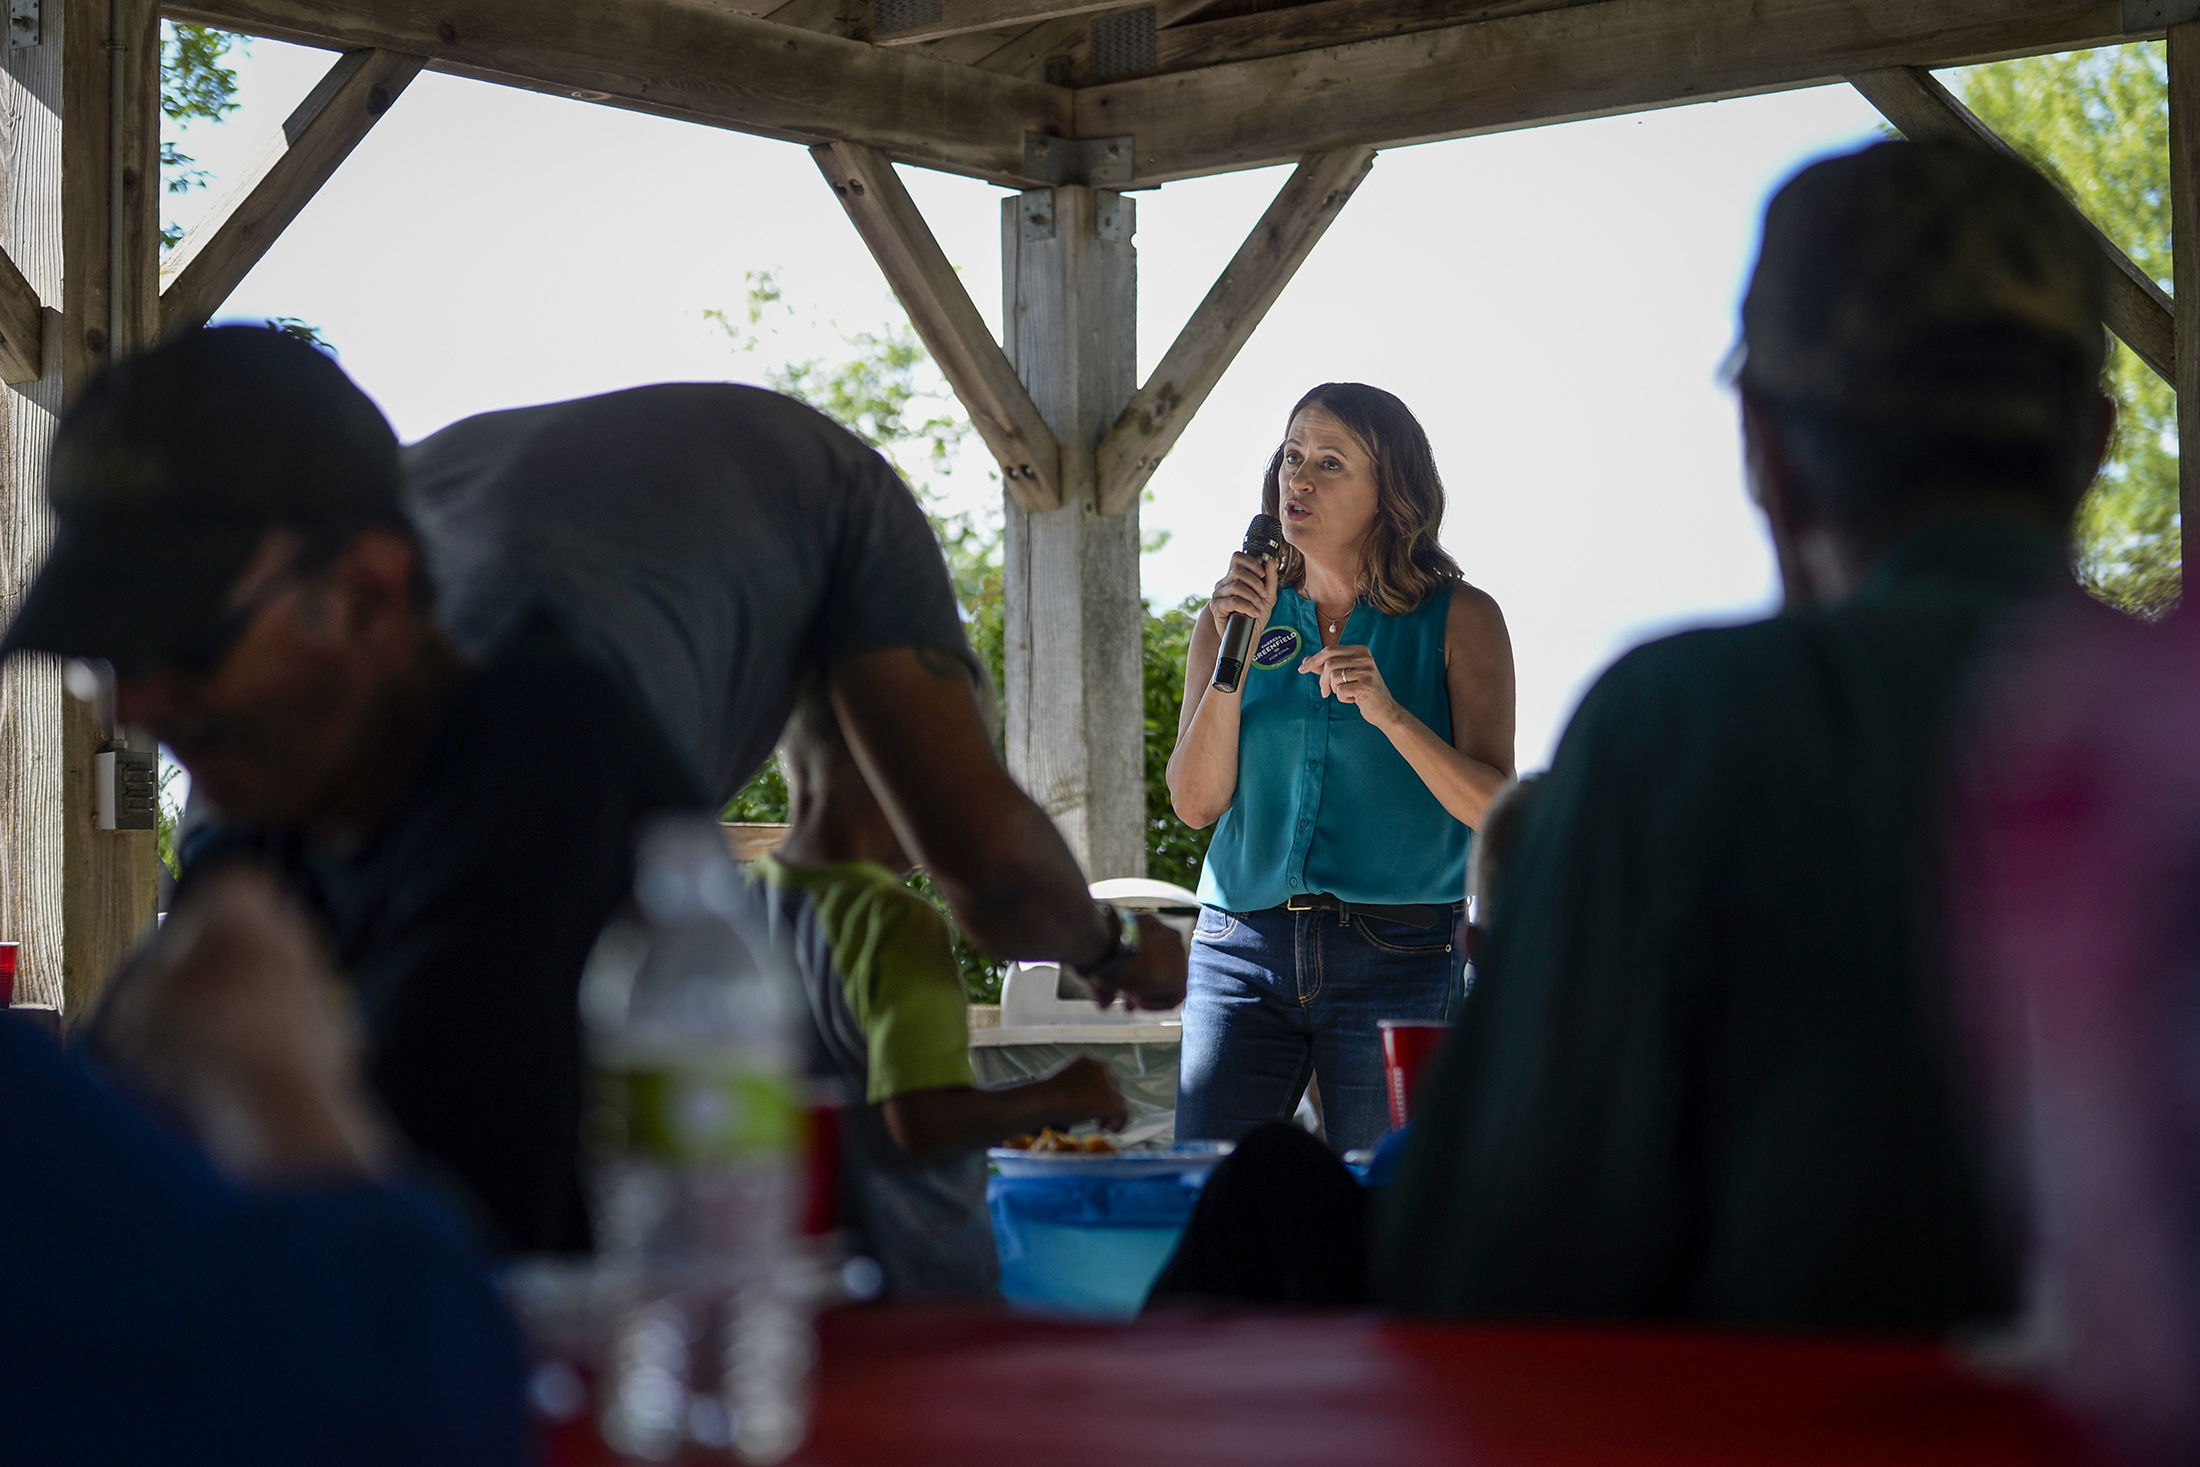 Democratic senate candidate Theresa Greenfield speaks at a picnic hosted by the Adair County Democrats in Greenfield, Iowa on Sunday August 11, 2019.